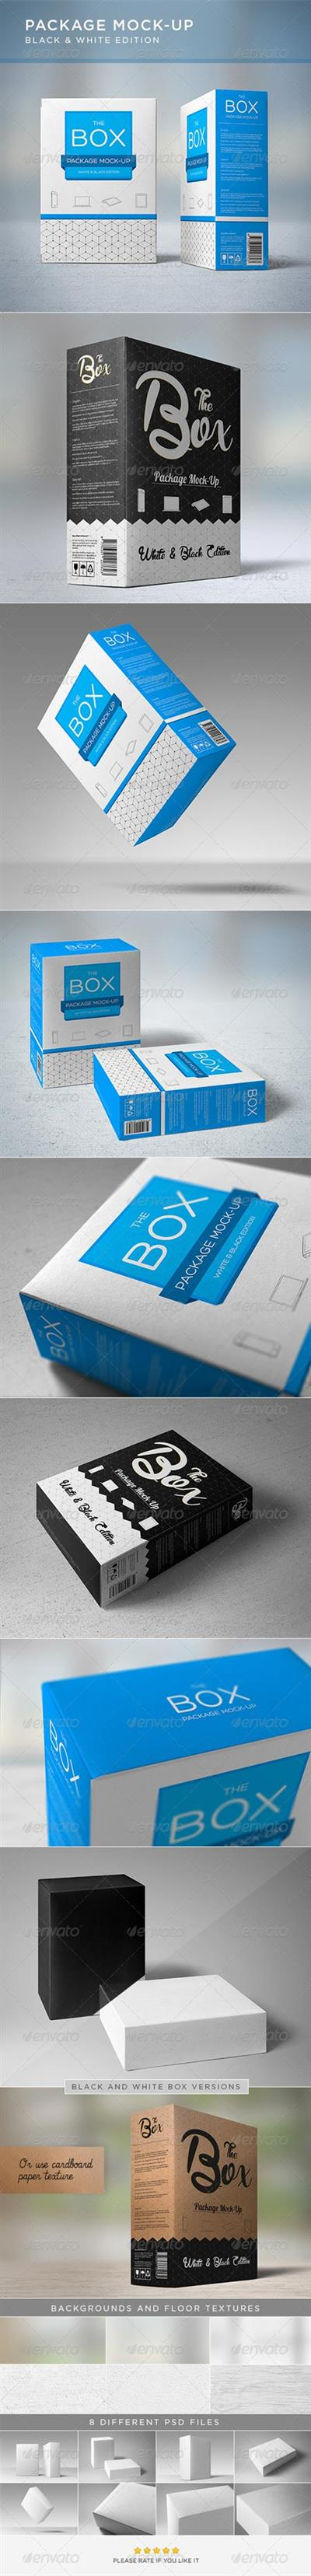 Nothing Found For Pin Package Mock Up Graphicriver Free Hero Graphic Design Special Gfx Posts Packaging Template Design Graphic Design Mockup Packaging Design